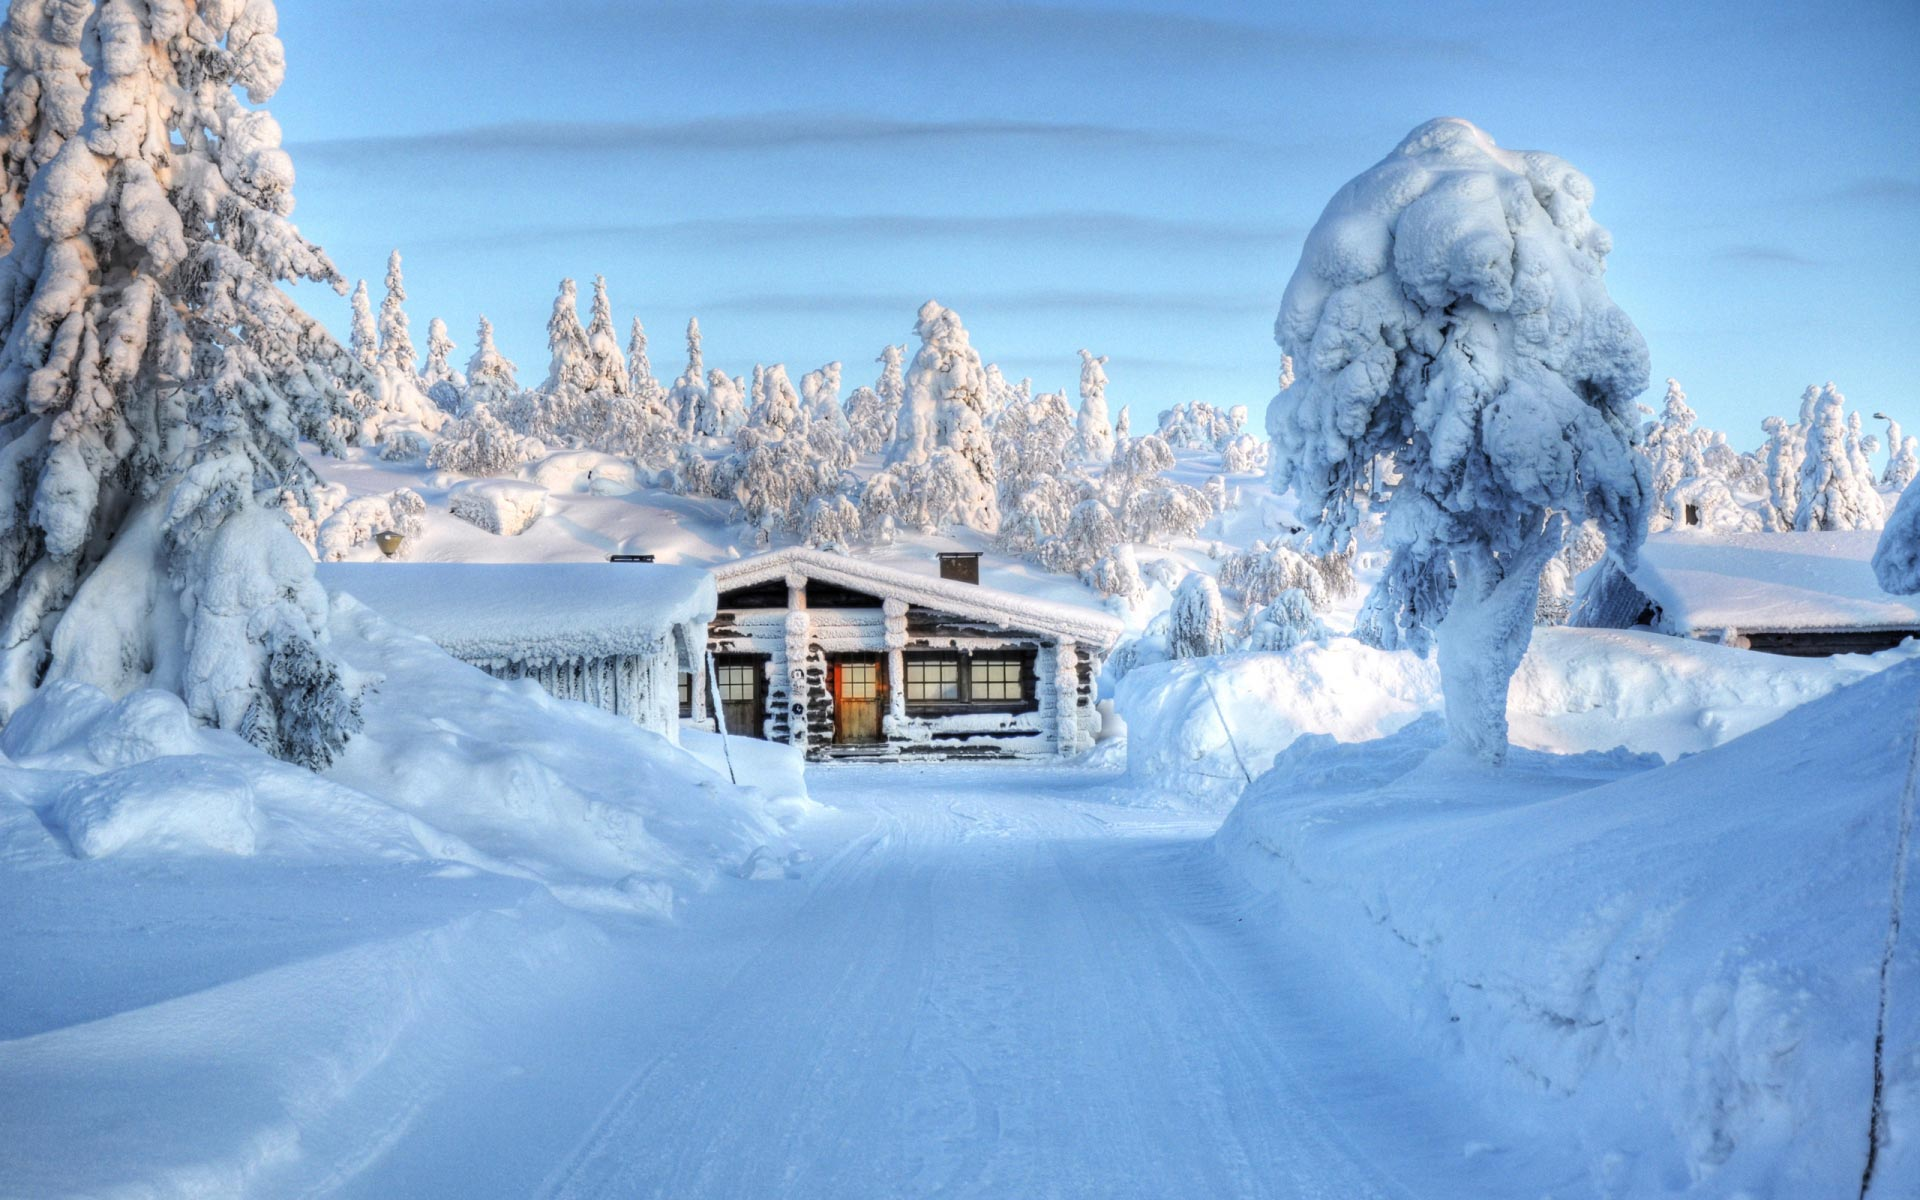 HU-Snow-Snow-HD-Pics-Free-Large-Images-wallpaper-wpc5806134